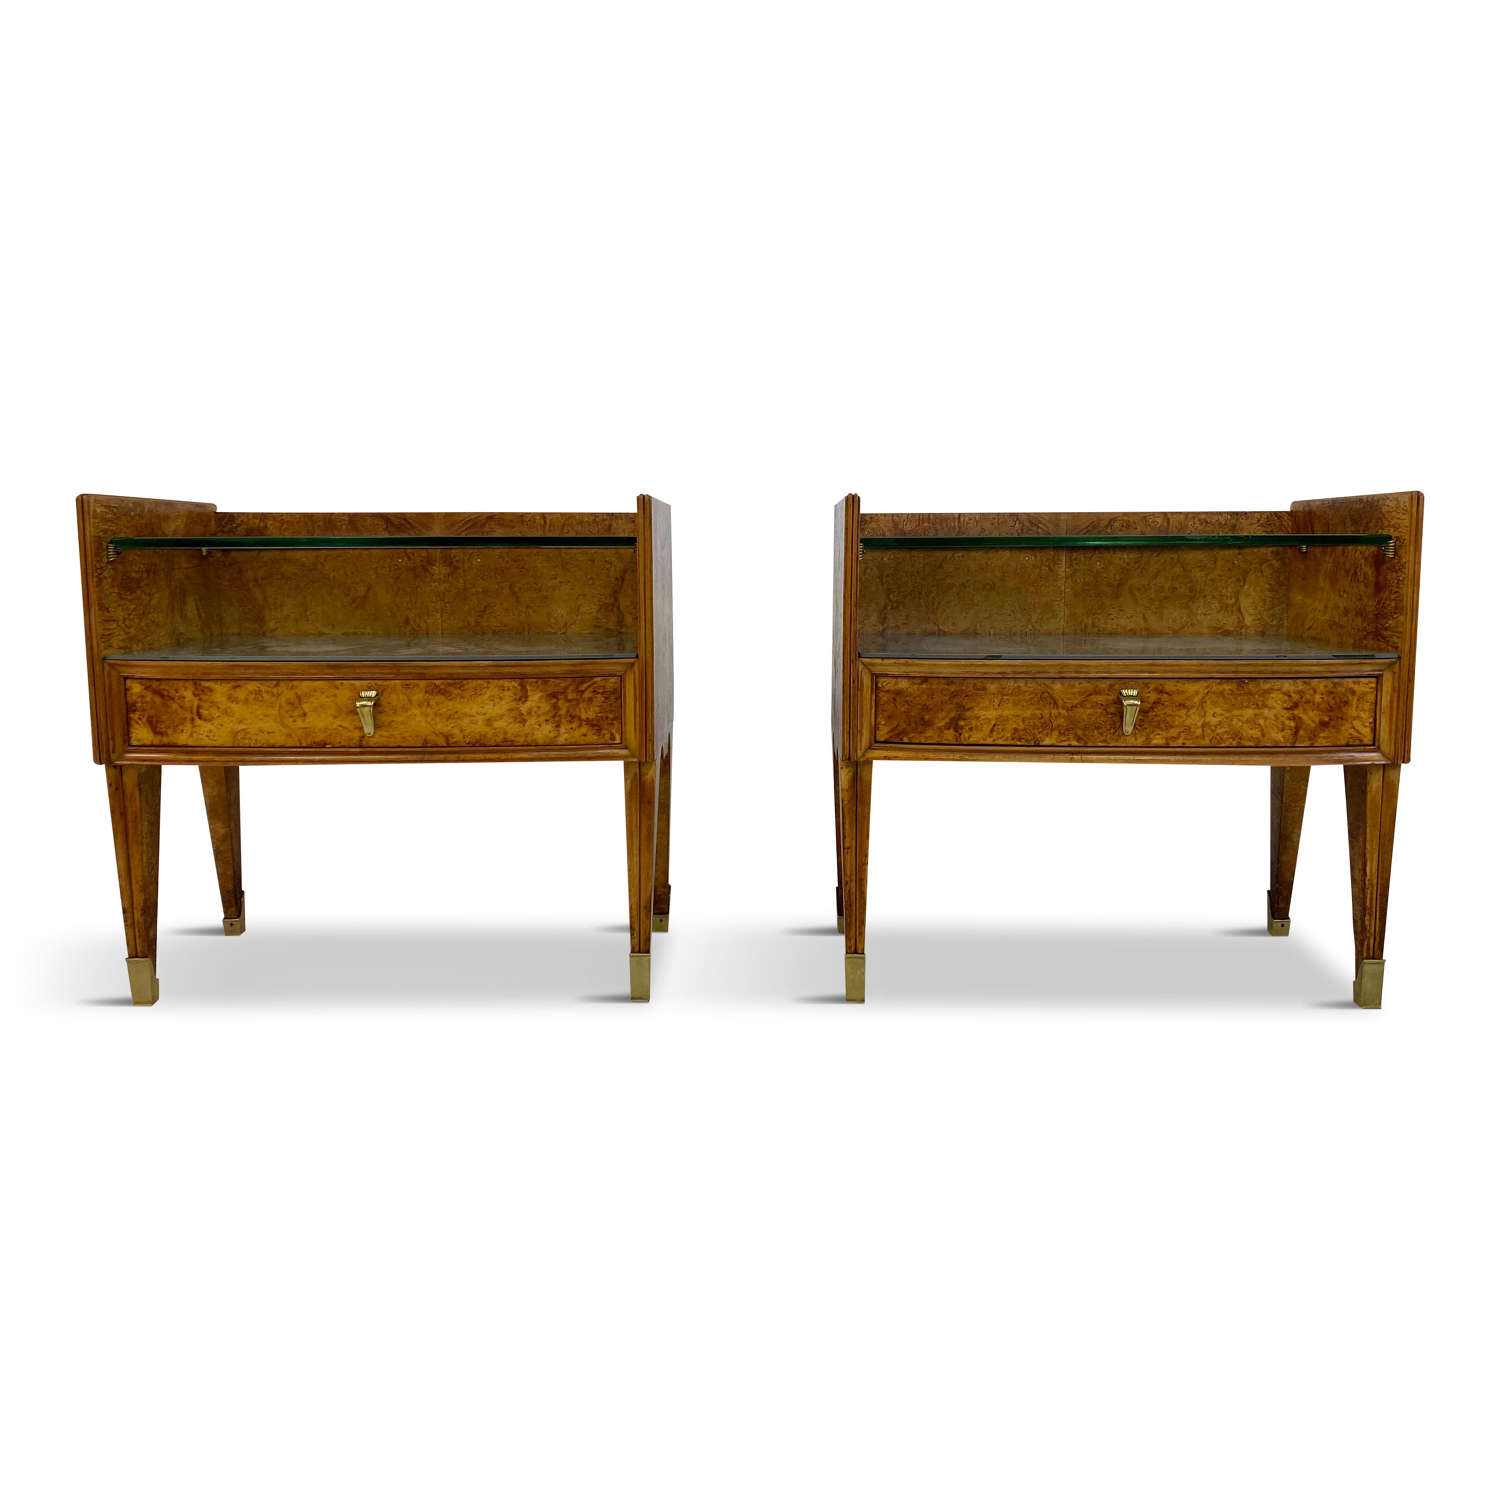 Pair of 1950s Italian Bedside Tables in Burl Wood